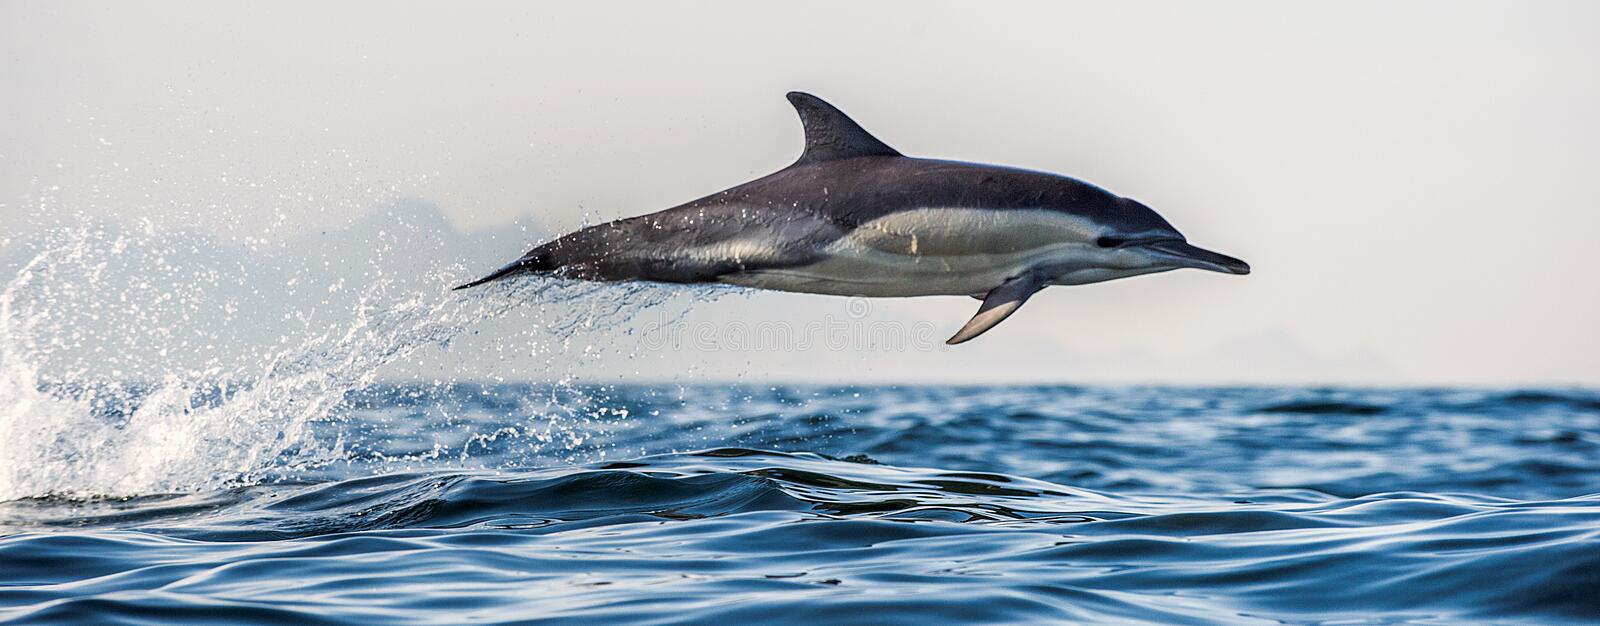 Dolphin jumping out of water. The Long-beaked common dolphin. stock photos